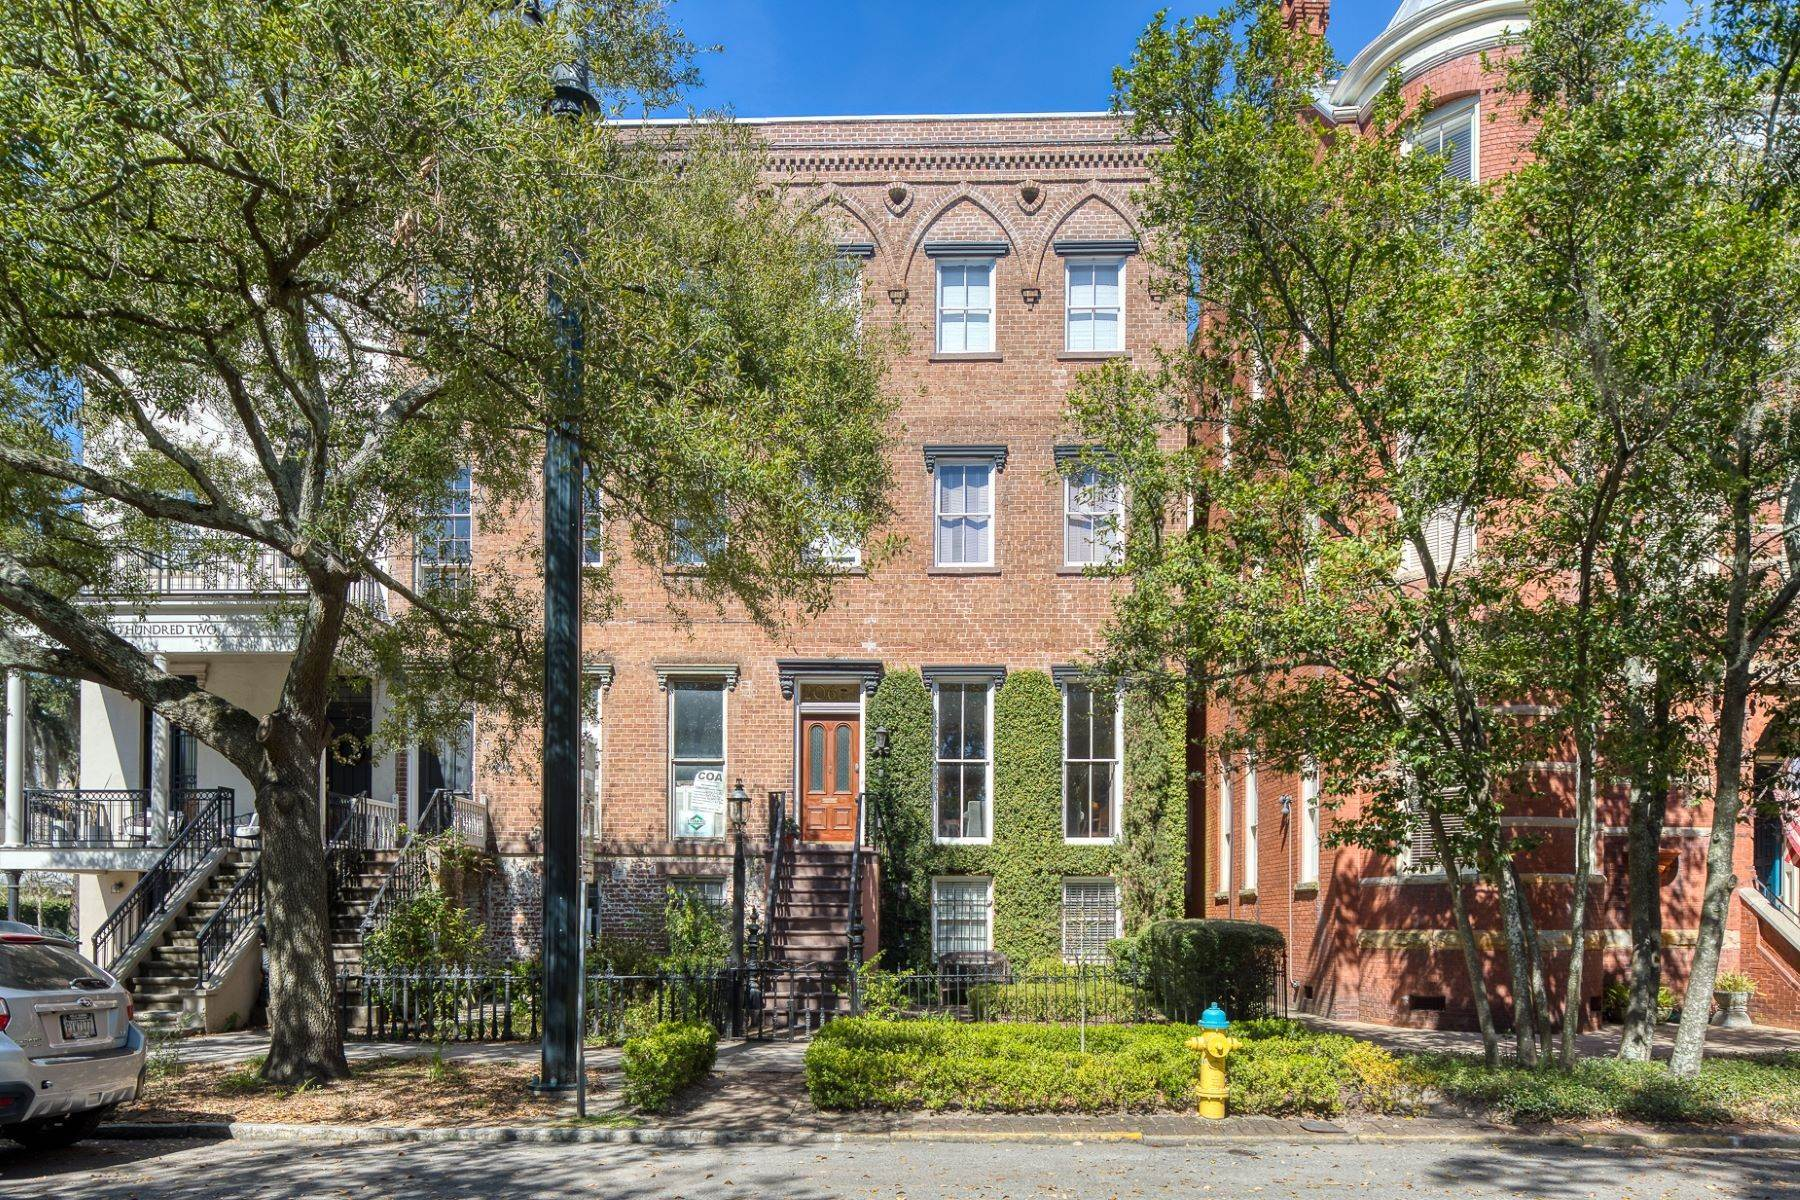 Single Family Homes for Active at Architectural Gem Located In The Heart Of Savannah's Landmark Historic District 206 E Gaston Street Savannah, Georgia 31401 United States